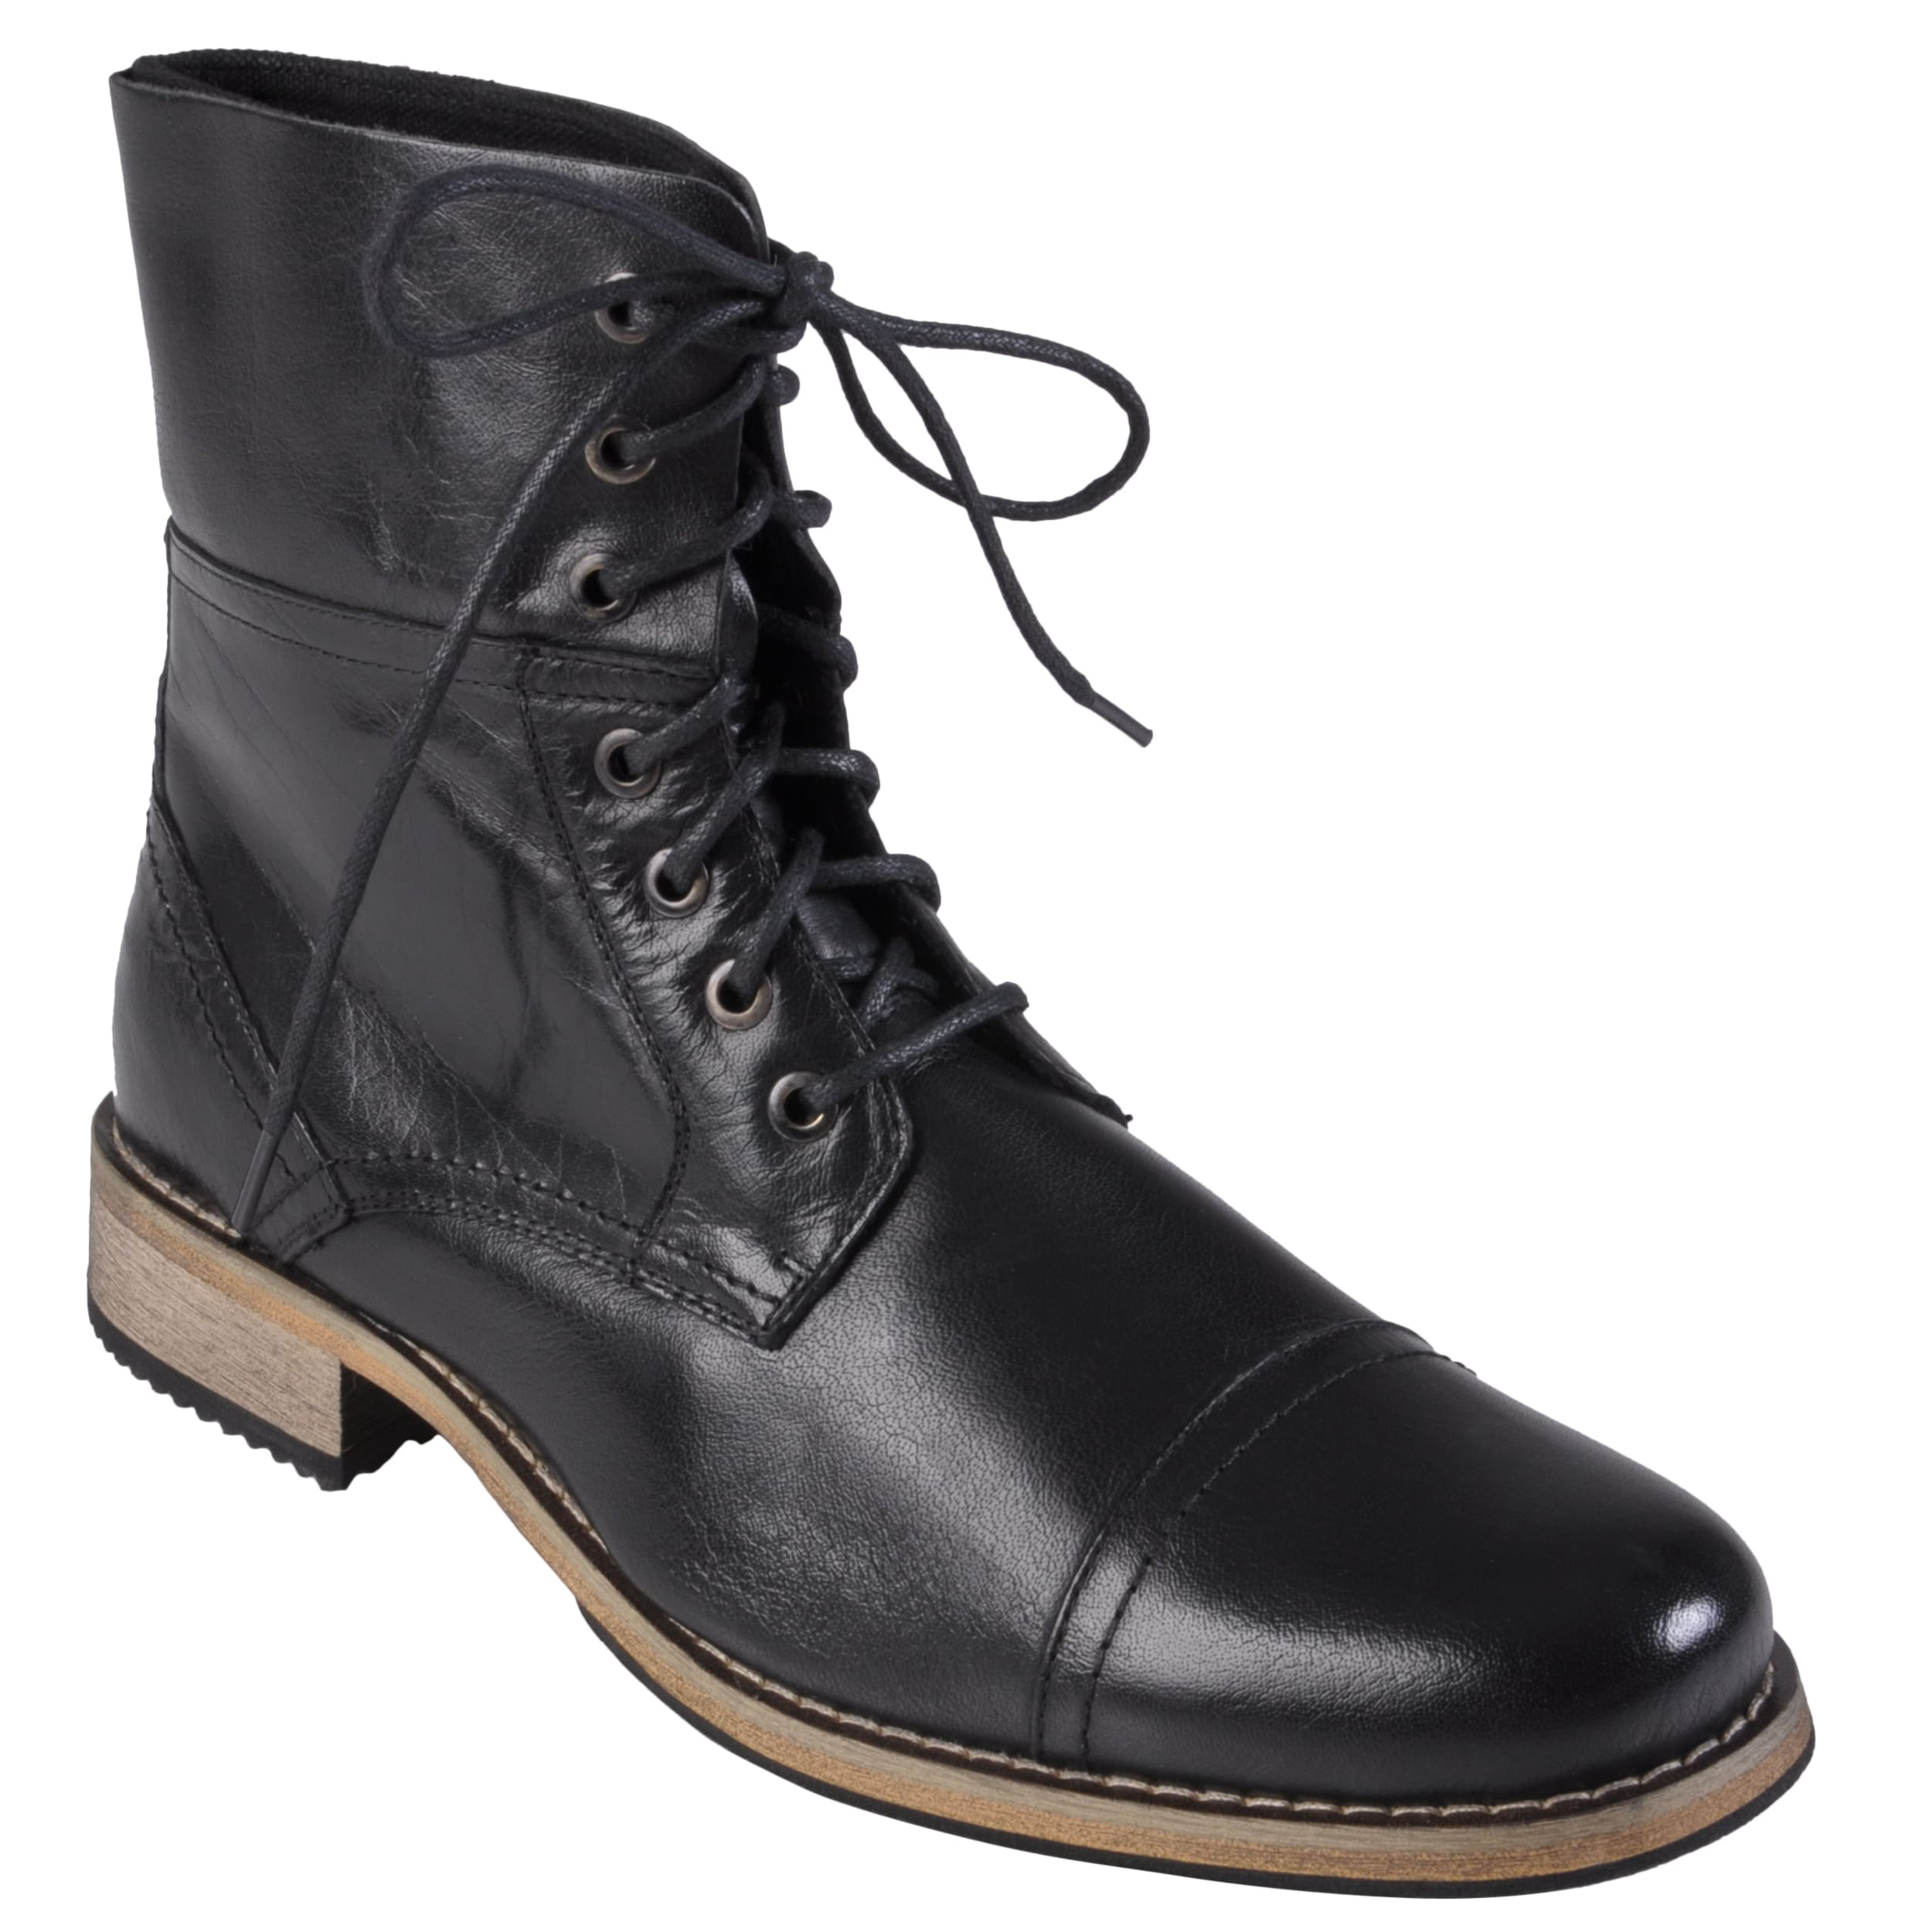 Oxford & Finch Men's Topstitched Leather Lace-up Boots